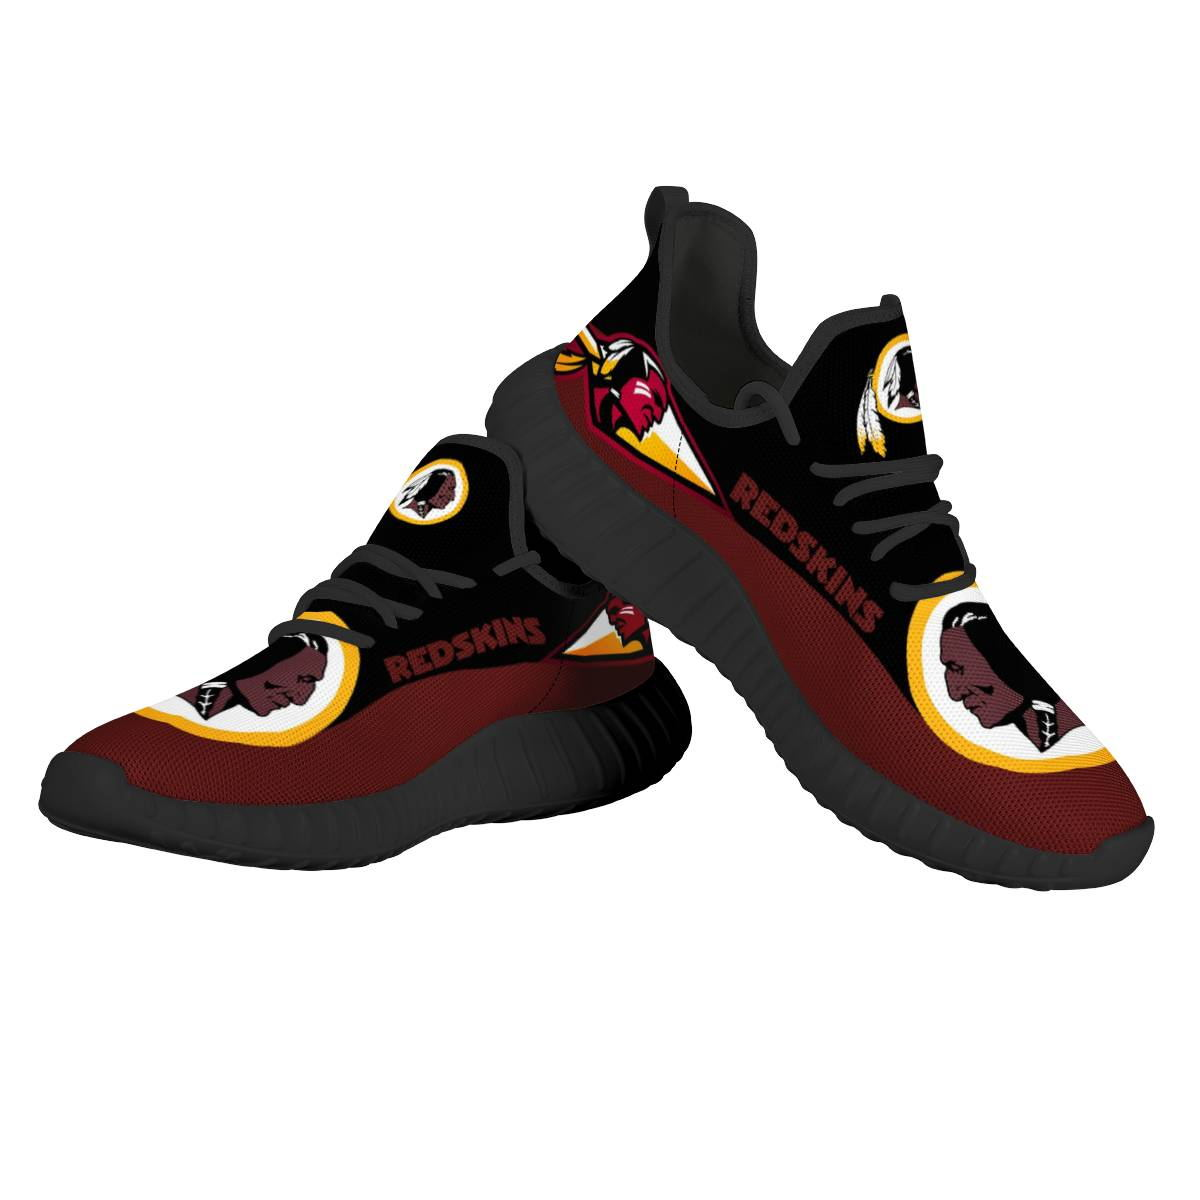 Men's NFL Washington Redskins Mesh Knit Sneakers/Shoes 002